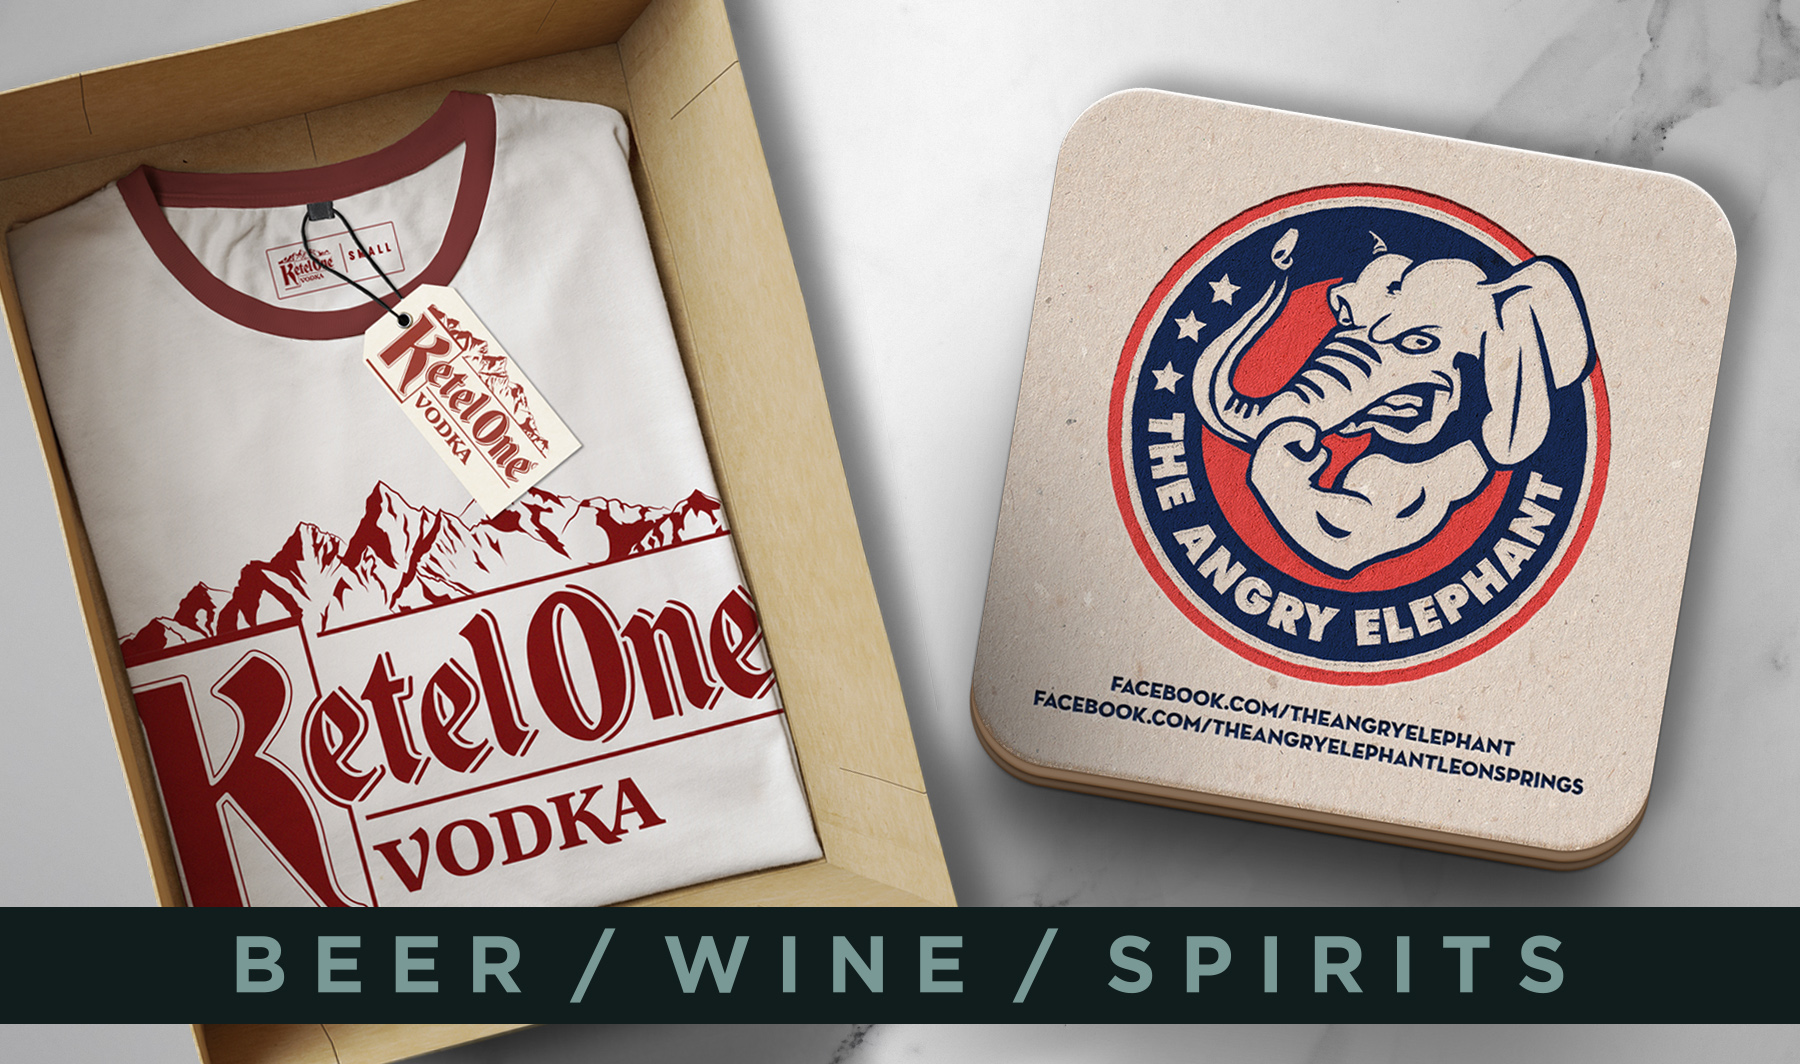 WMS Custom Products Anything Tee Shirts Garments - Beer Wine Spirits.jpg